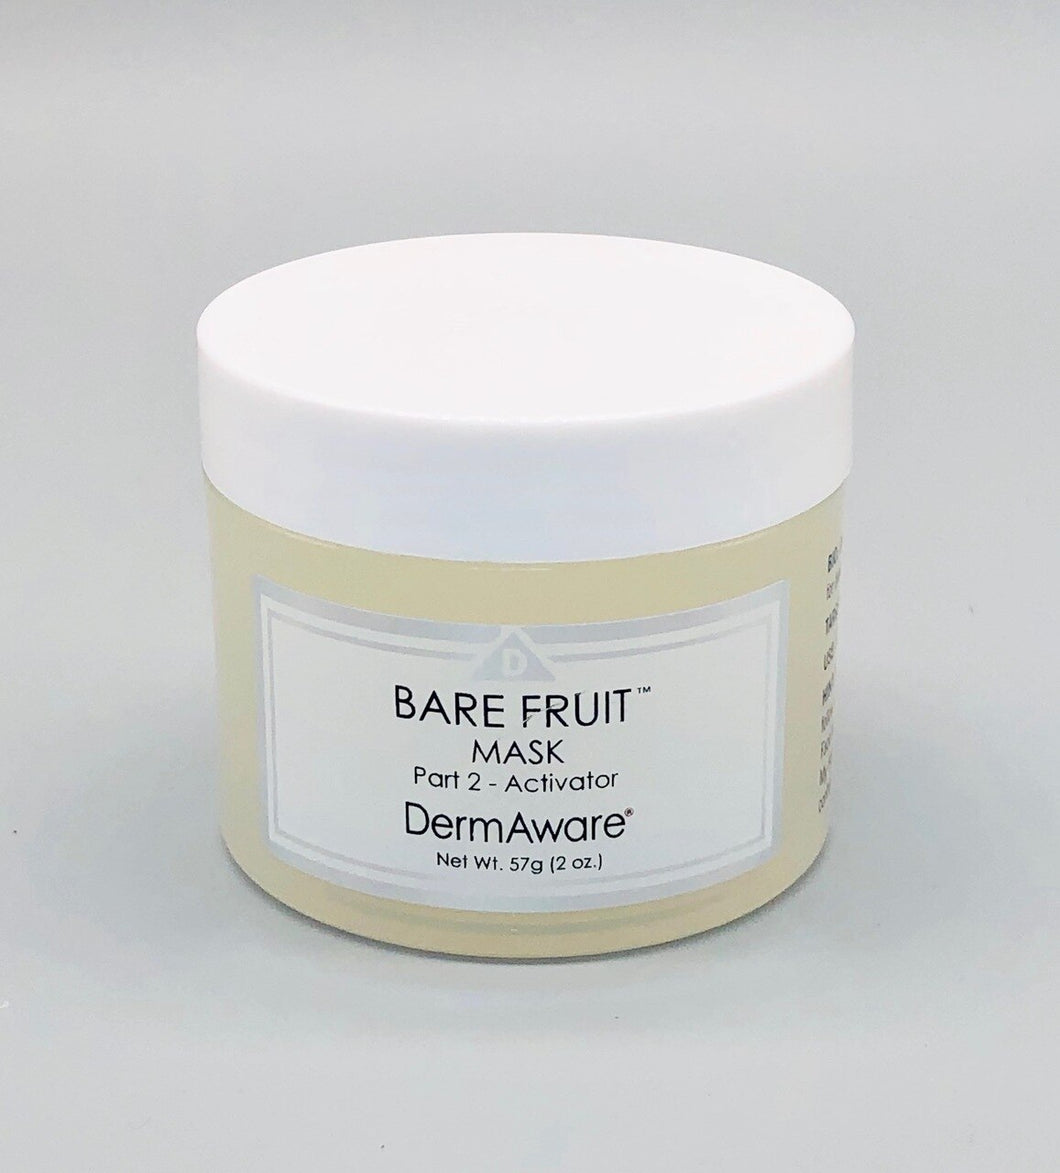 Dermaware Bare Fruit Mask PART 2